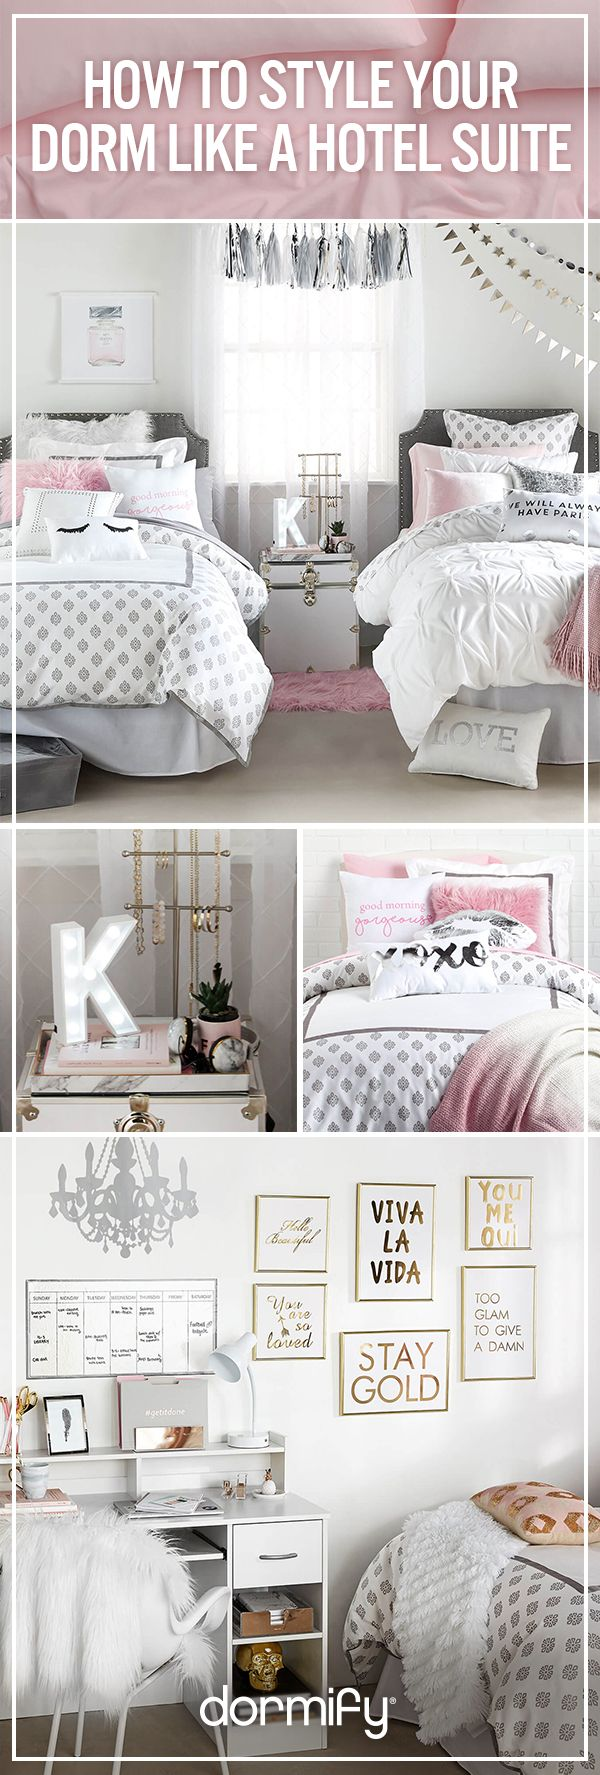 Design your dorm to be a hotel suite you'll never want to check out of. Head to dormify.com to style now!